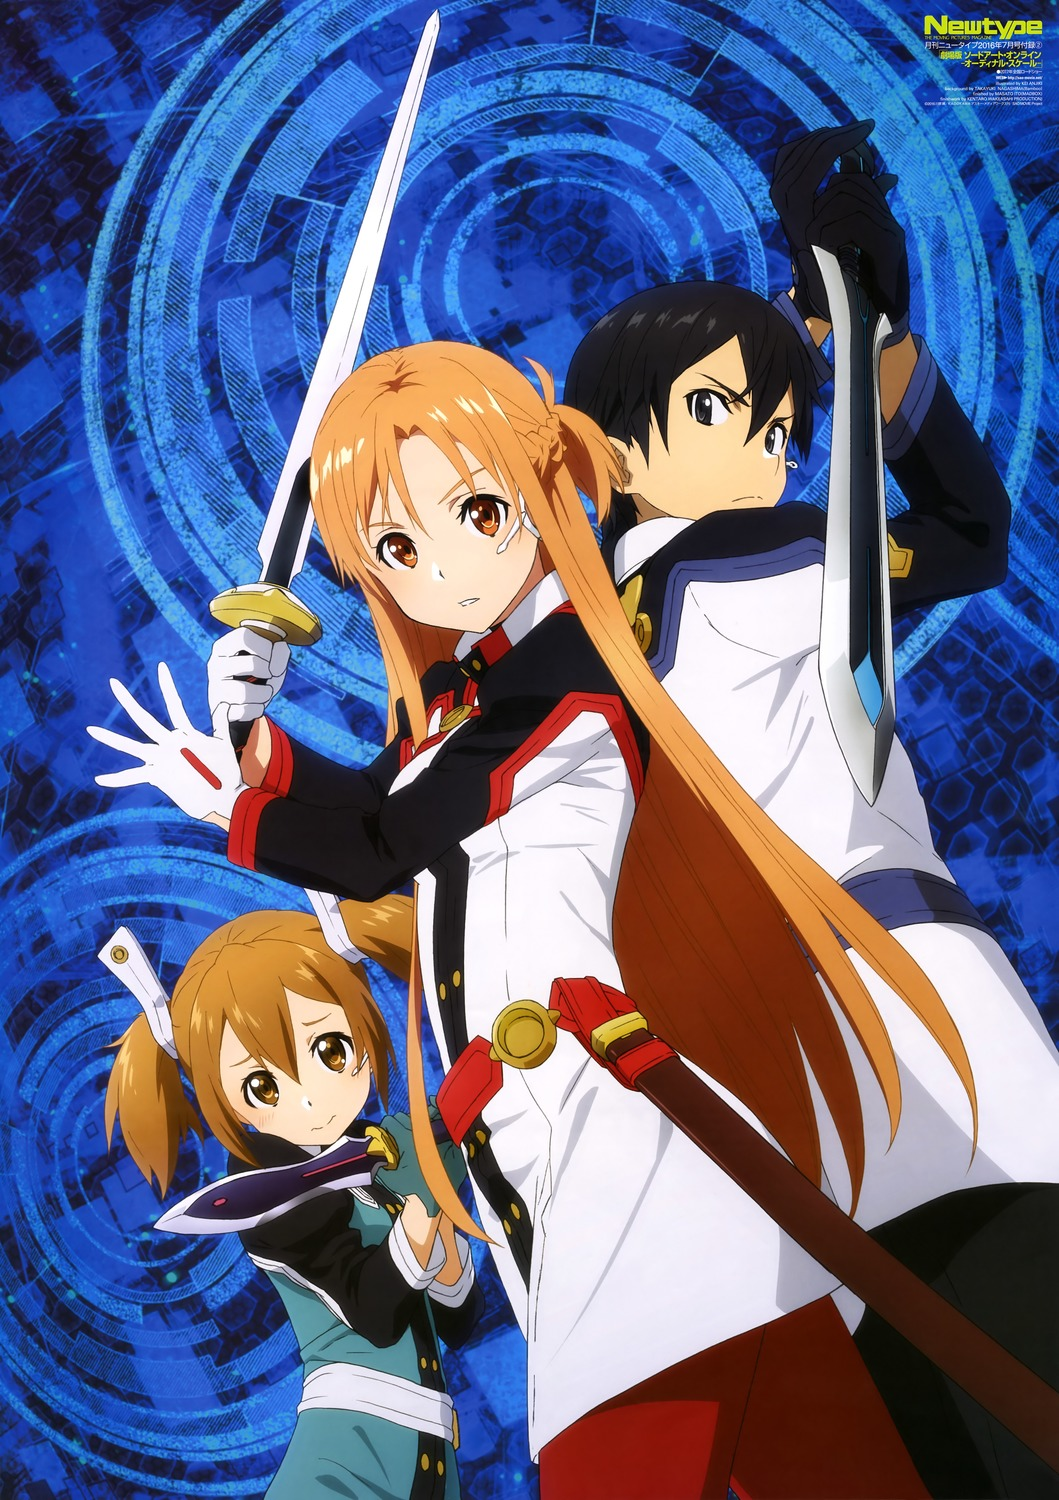 Sao Ordinal Scale Vostfr : ordinal, scale, vostfr, ANIME], Sword, Online:, Ordinal, Scale, FullDive